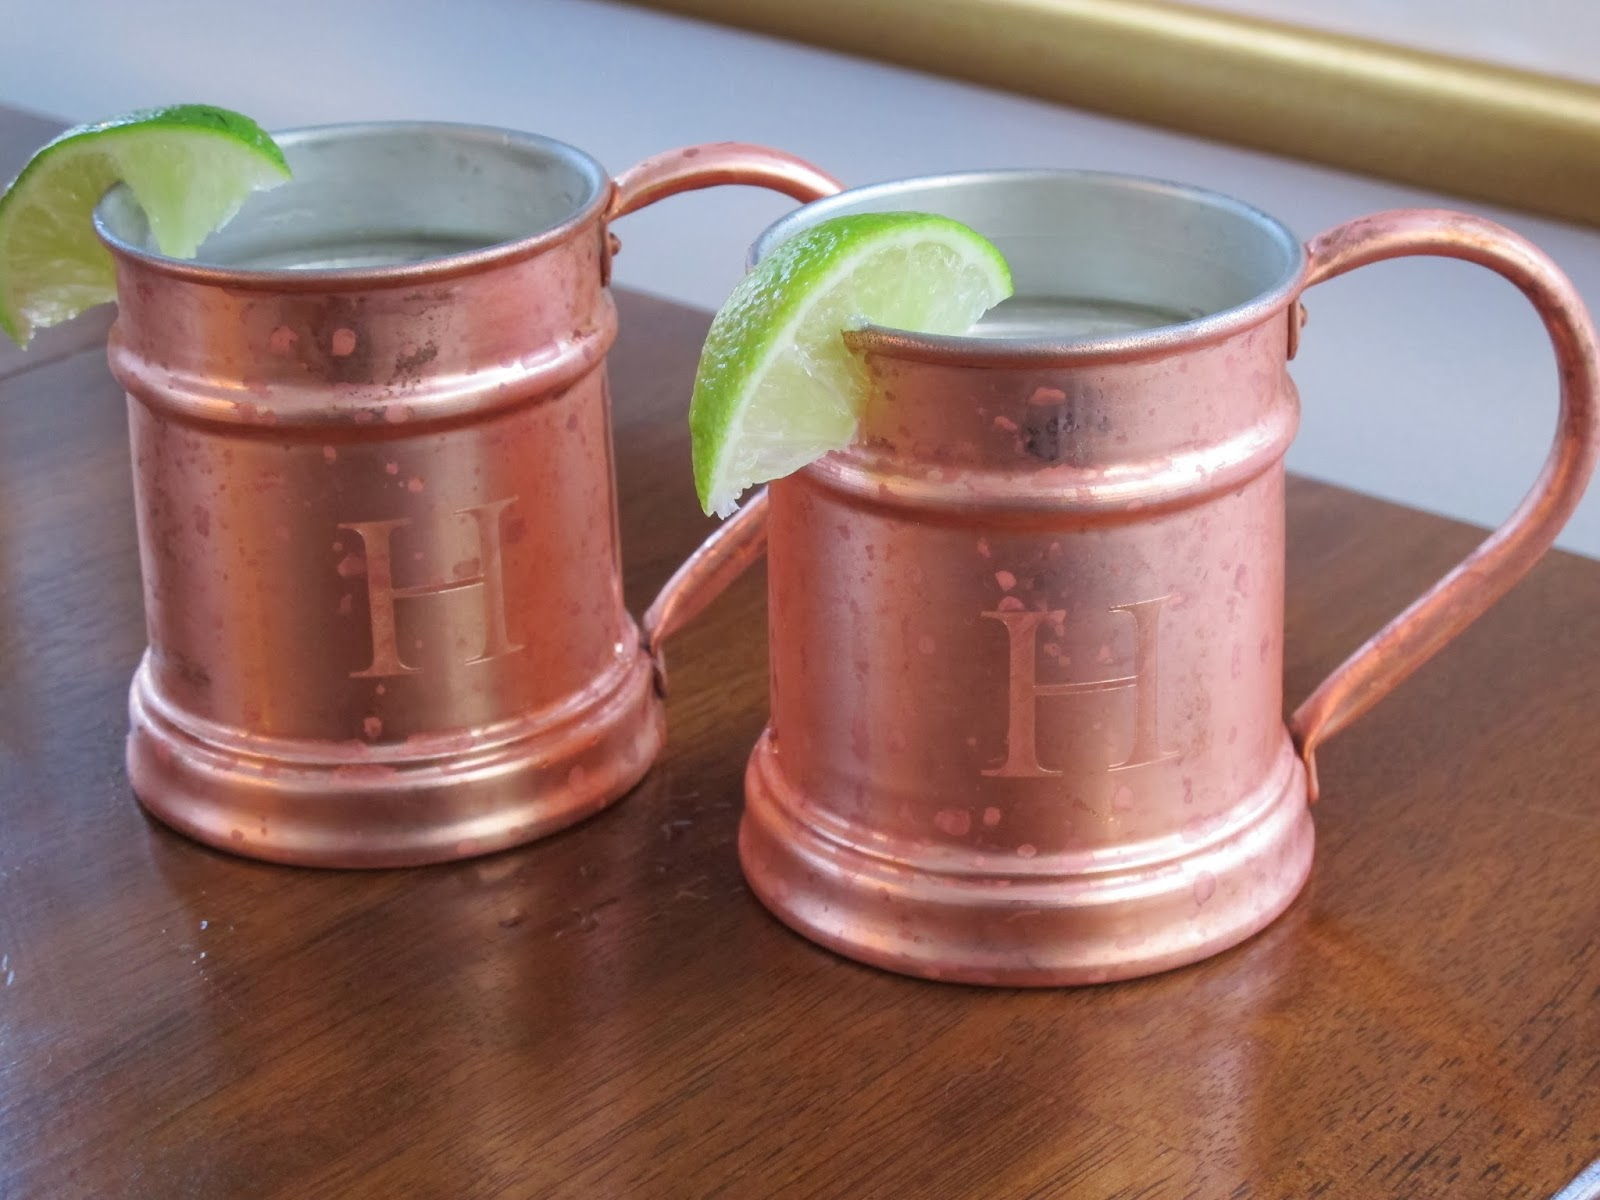 Moscow Mule Cocktails in Copper Mugs